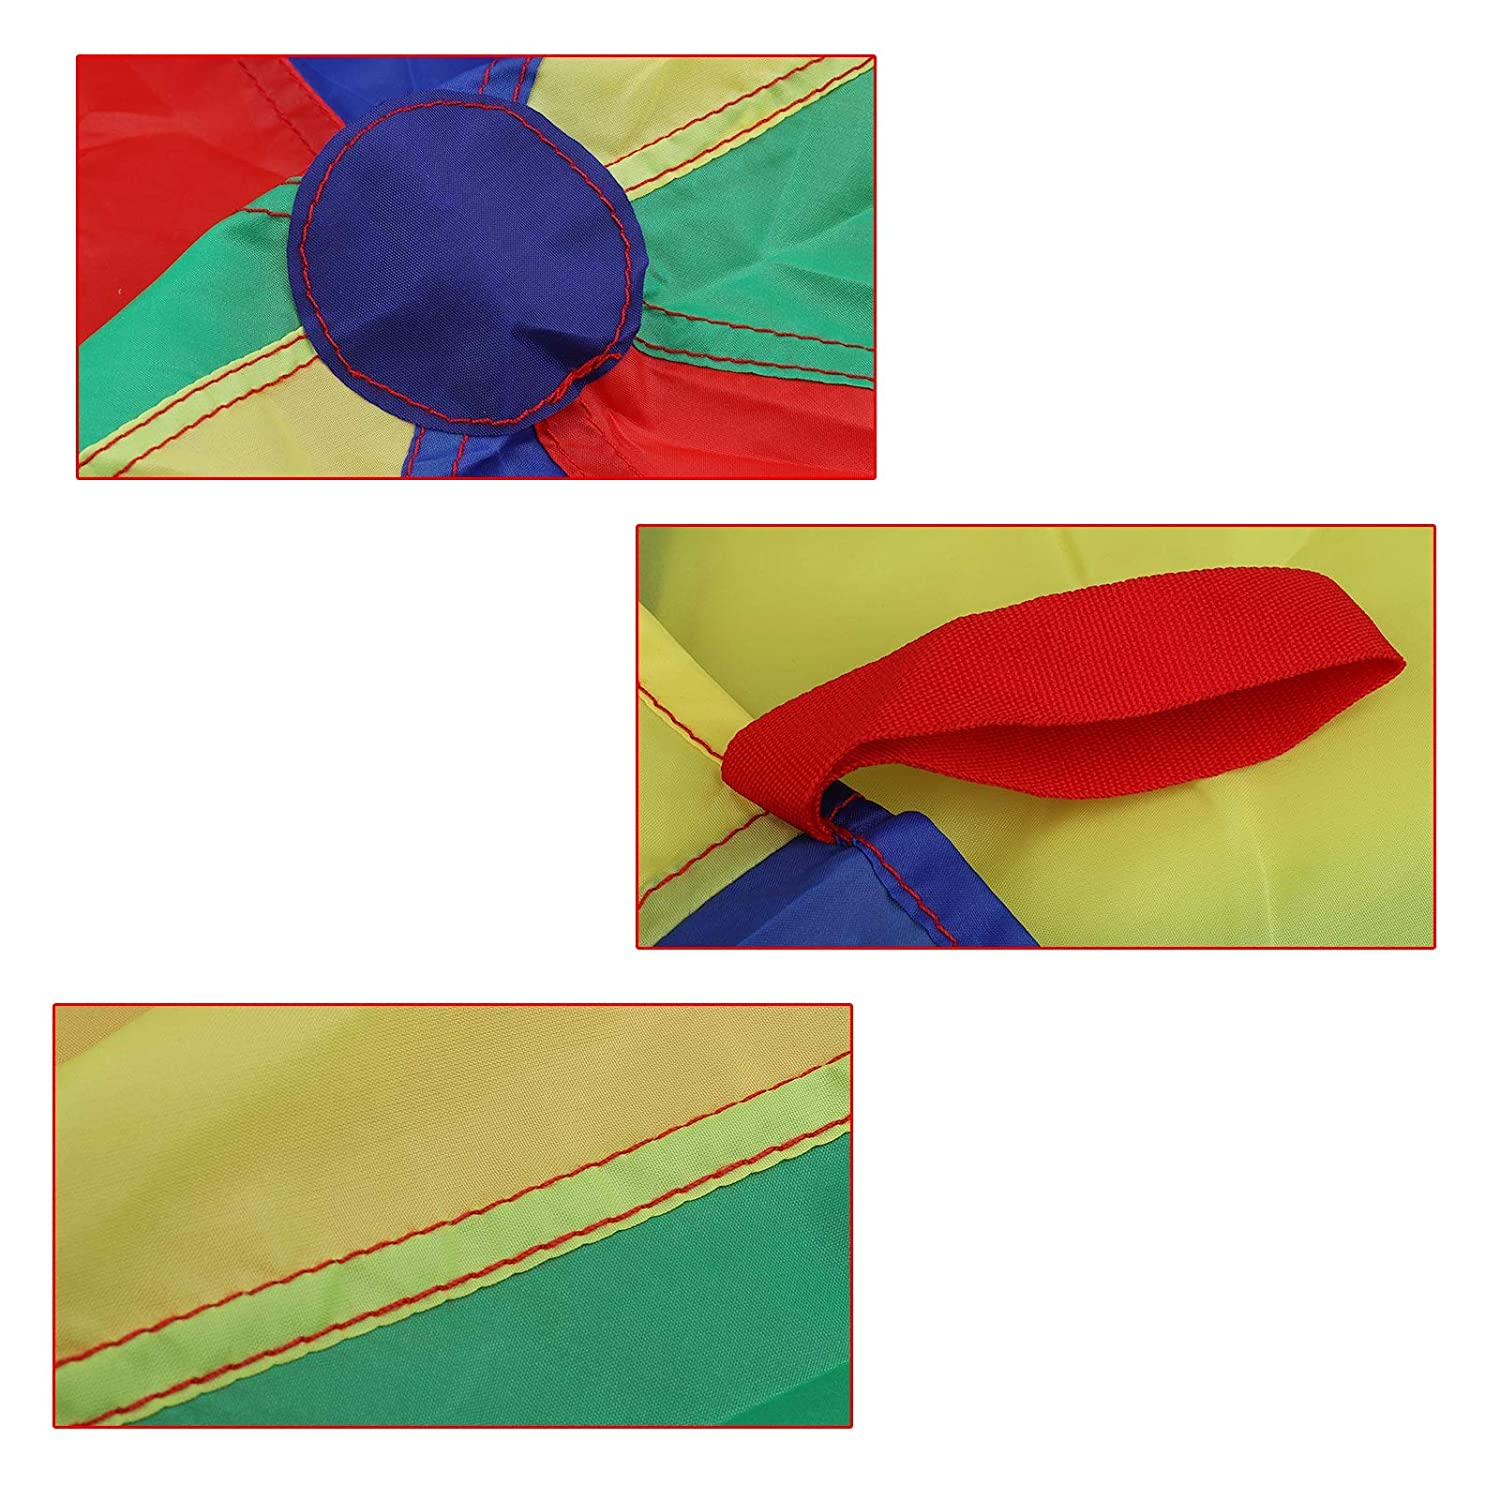 6 ft Rainbow Play Parachute for Kids with 9 Handles for 4-8 Kids Tent Cooperative Games Birthday Gift,Promote Teamwork Social Bonding for Ages 3+ Fitness Uglyfish Kids Play Parachute